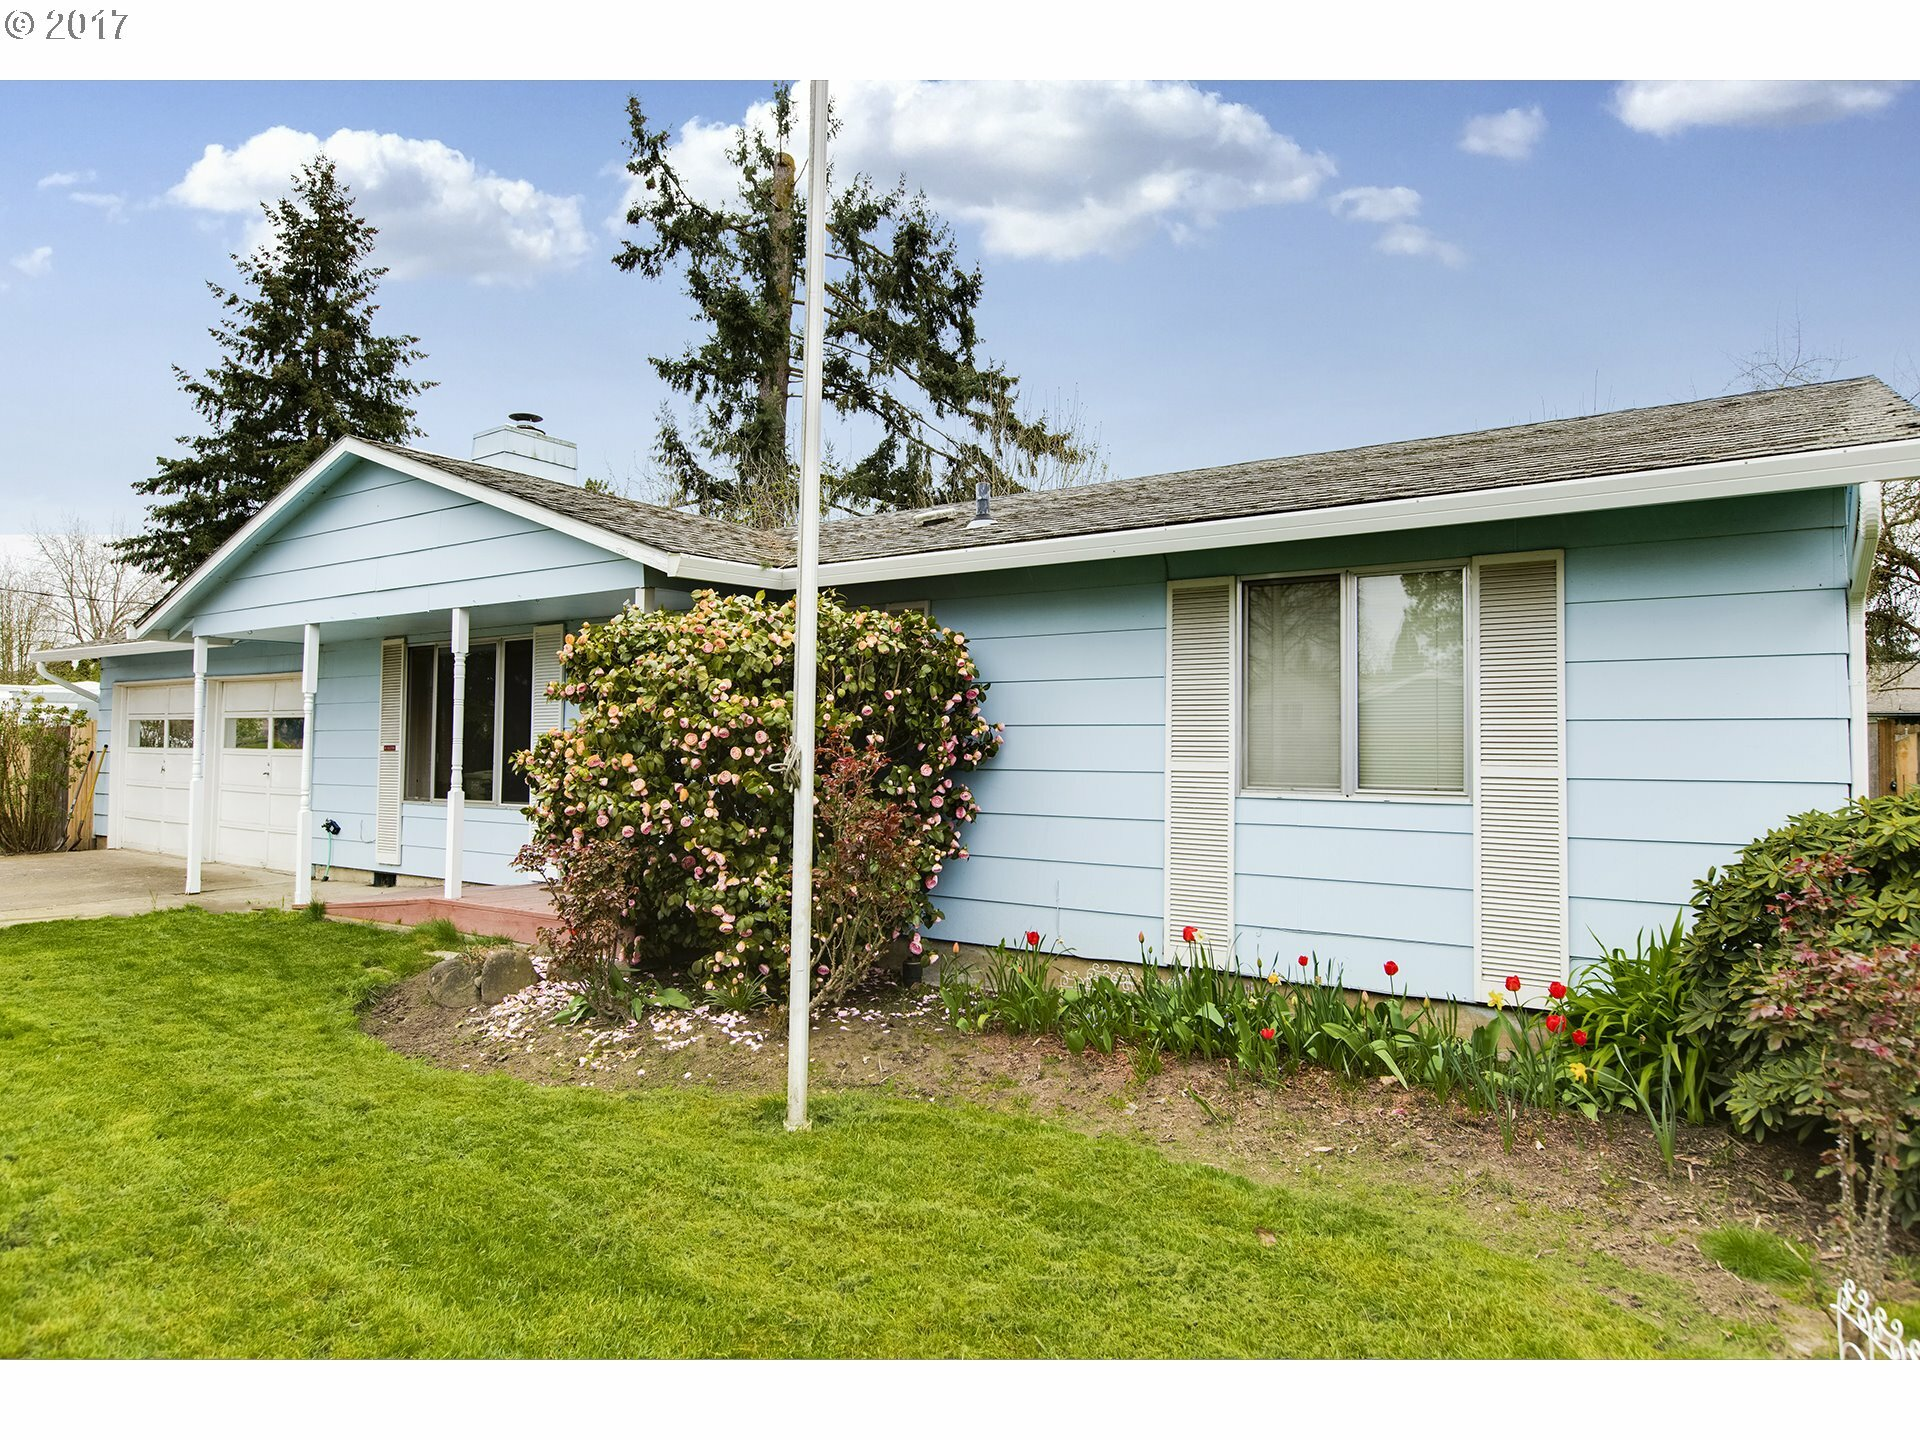 2905 Sw 198th Ave, Aloha, OR - USA (photo 1)